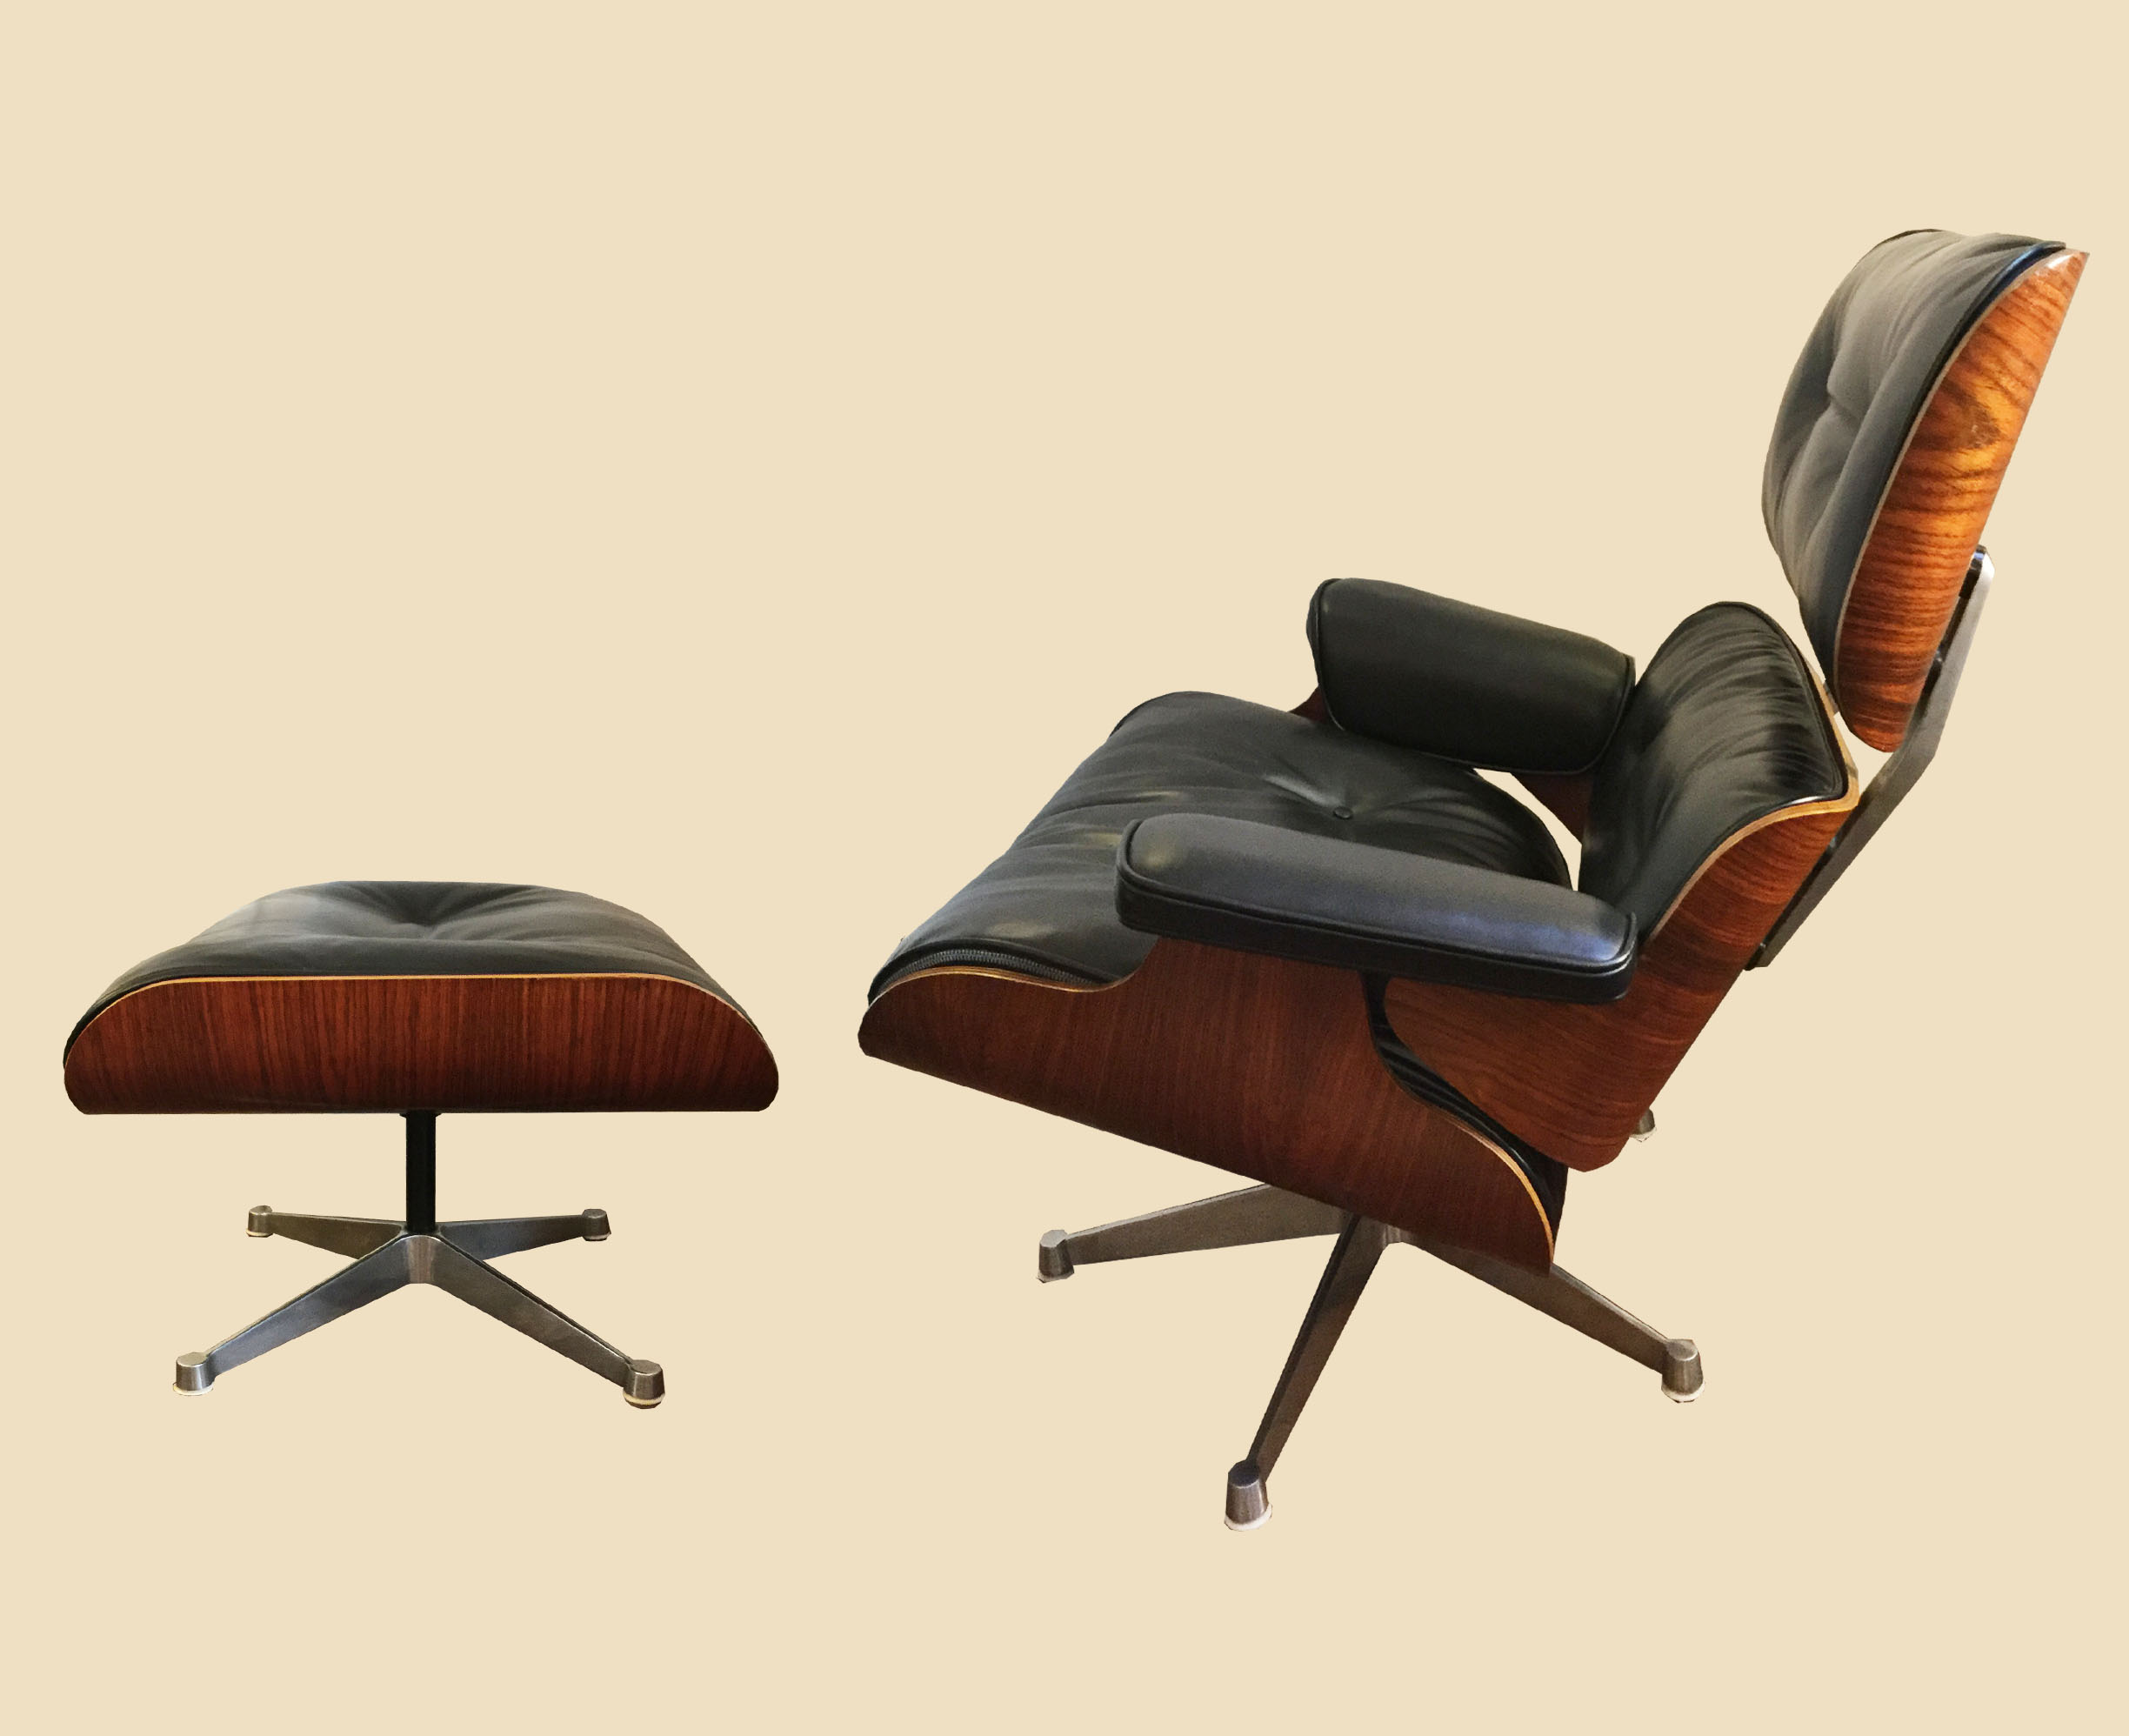 fauteuil lounge chair et ottoman charles ray eames galerie yvan royer. Black Bedroom Furniture Sets. Home Design Ideas